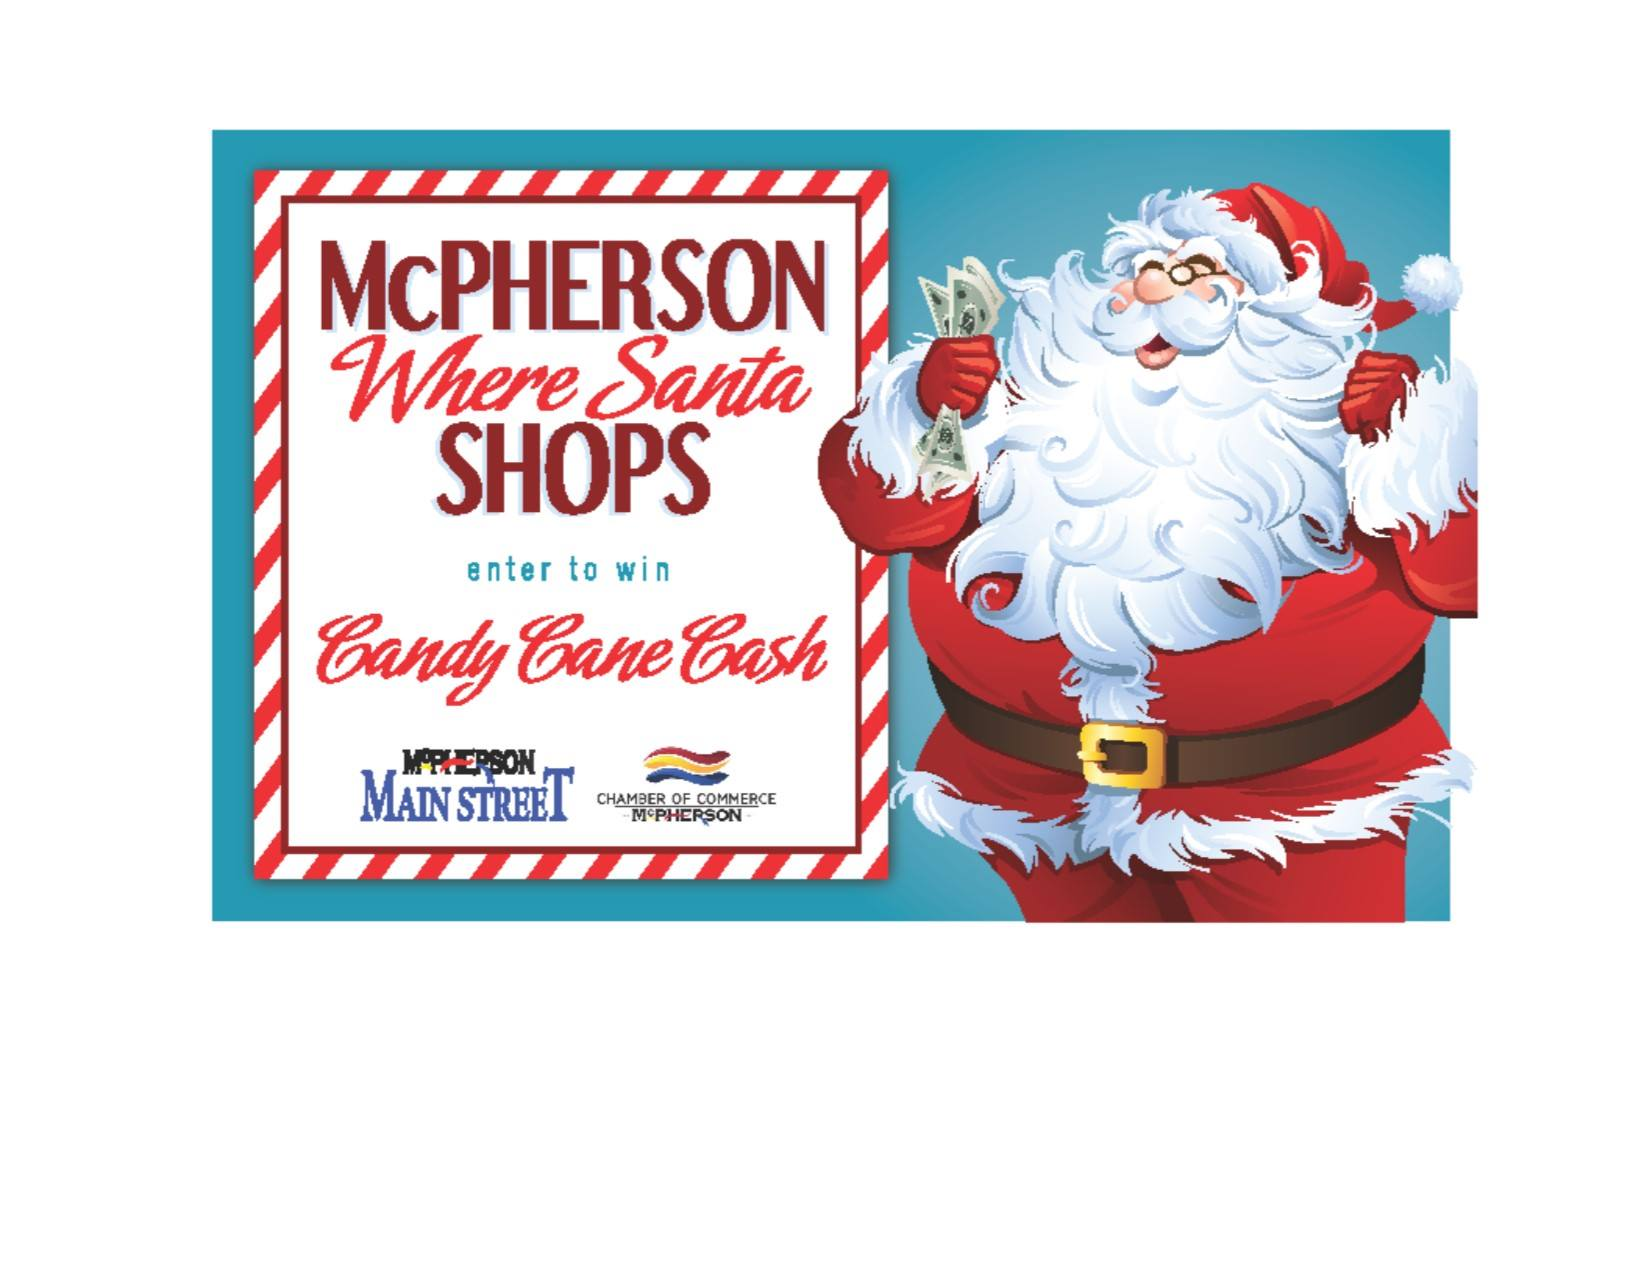 This is an ad for the 2017 Candy Cane Cash promotion sponsored by McPherson Main Street and McPherso